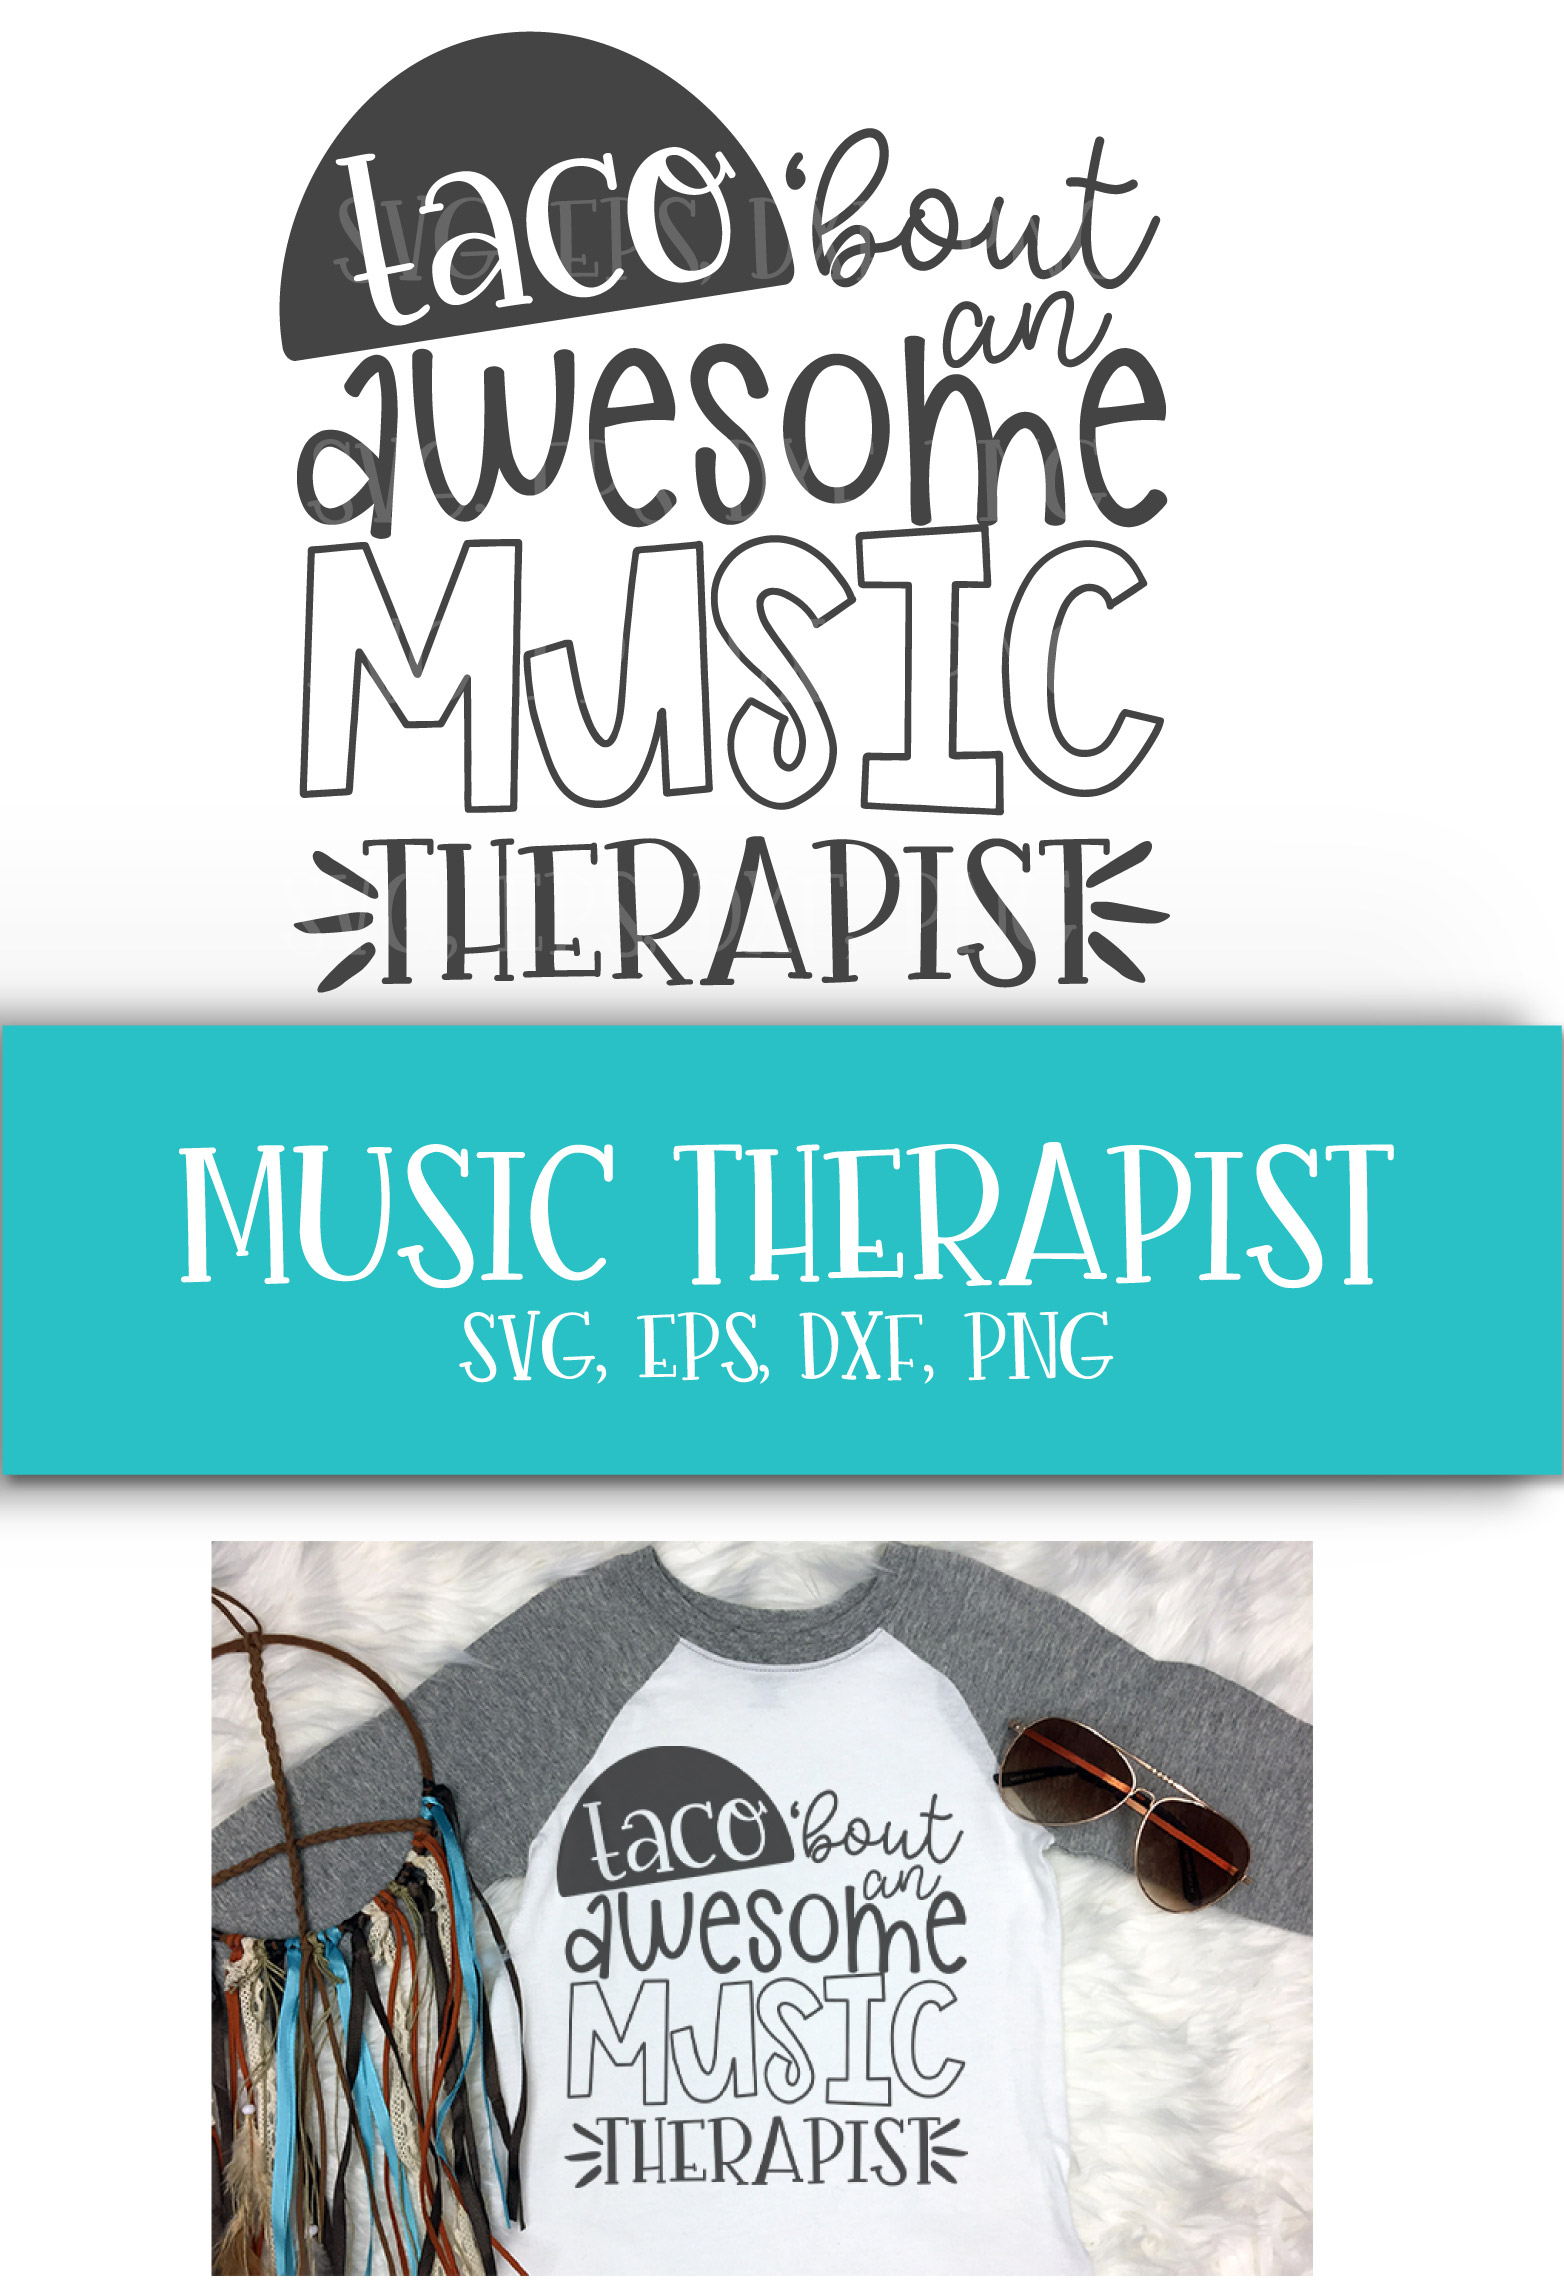 Music Teacher, School, Therapist, Taco, SVG, PNG, DXF, EPS example image 2